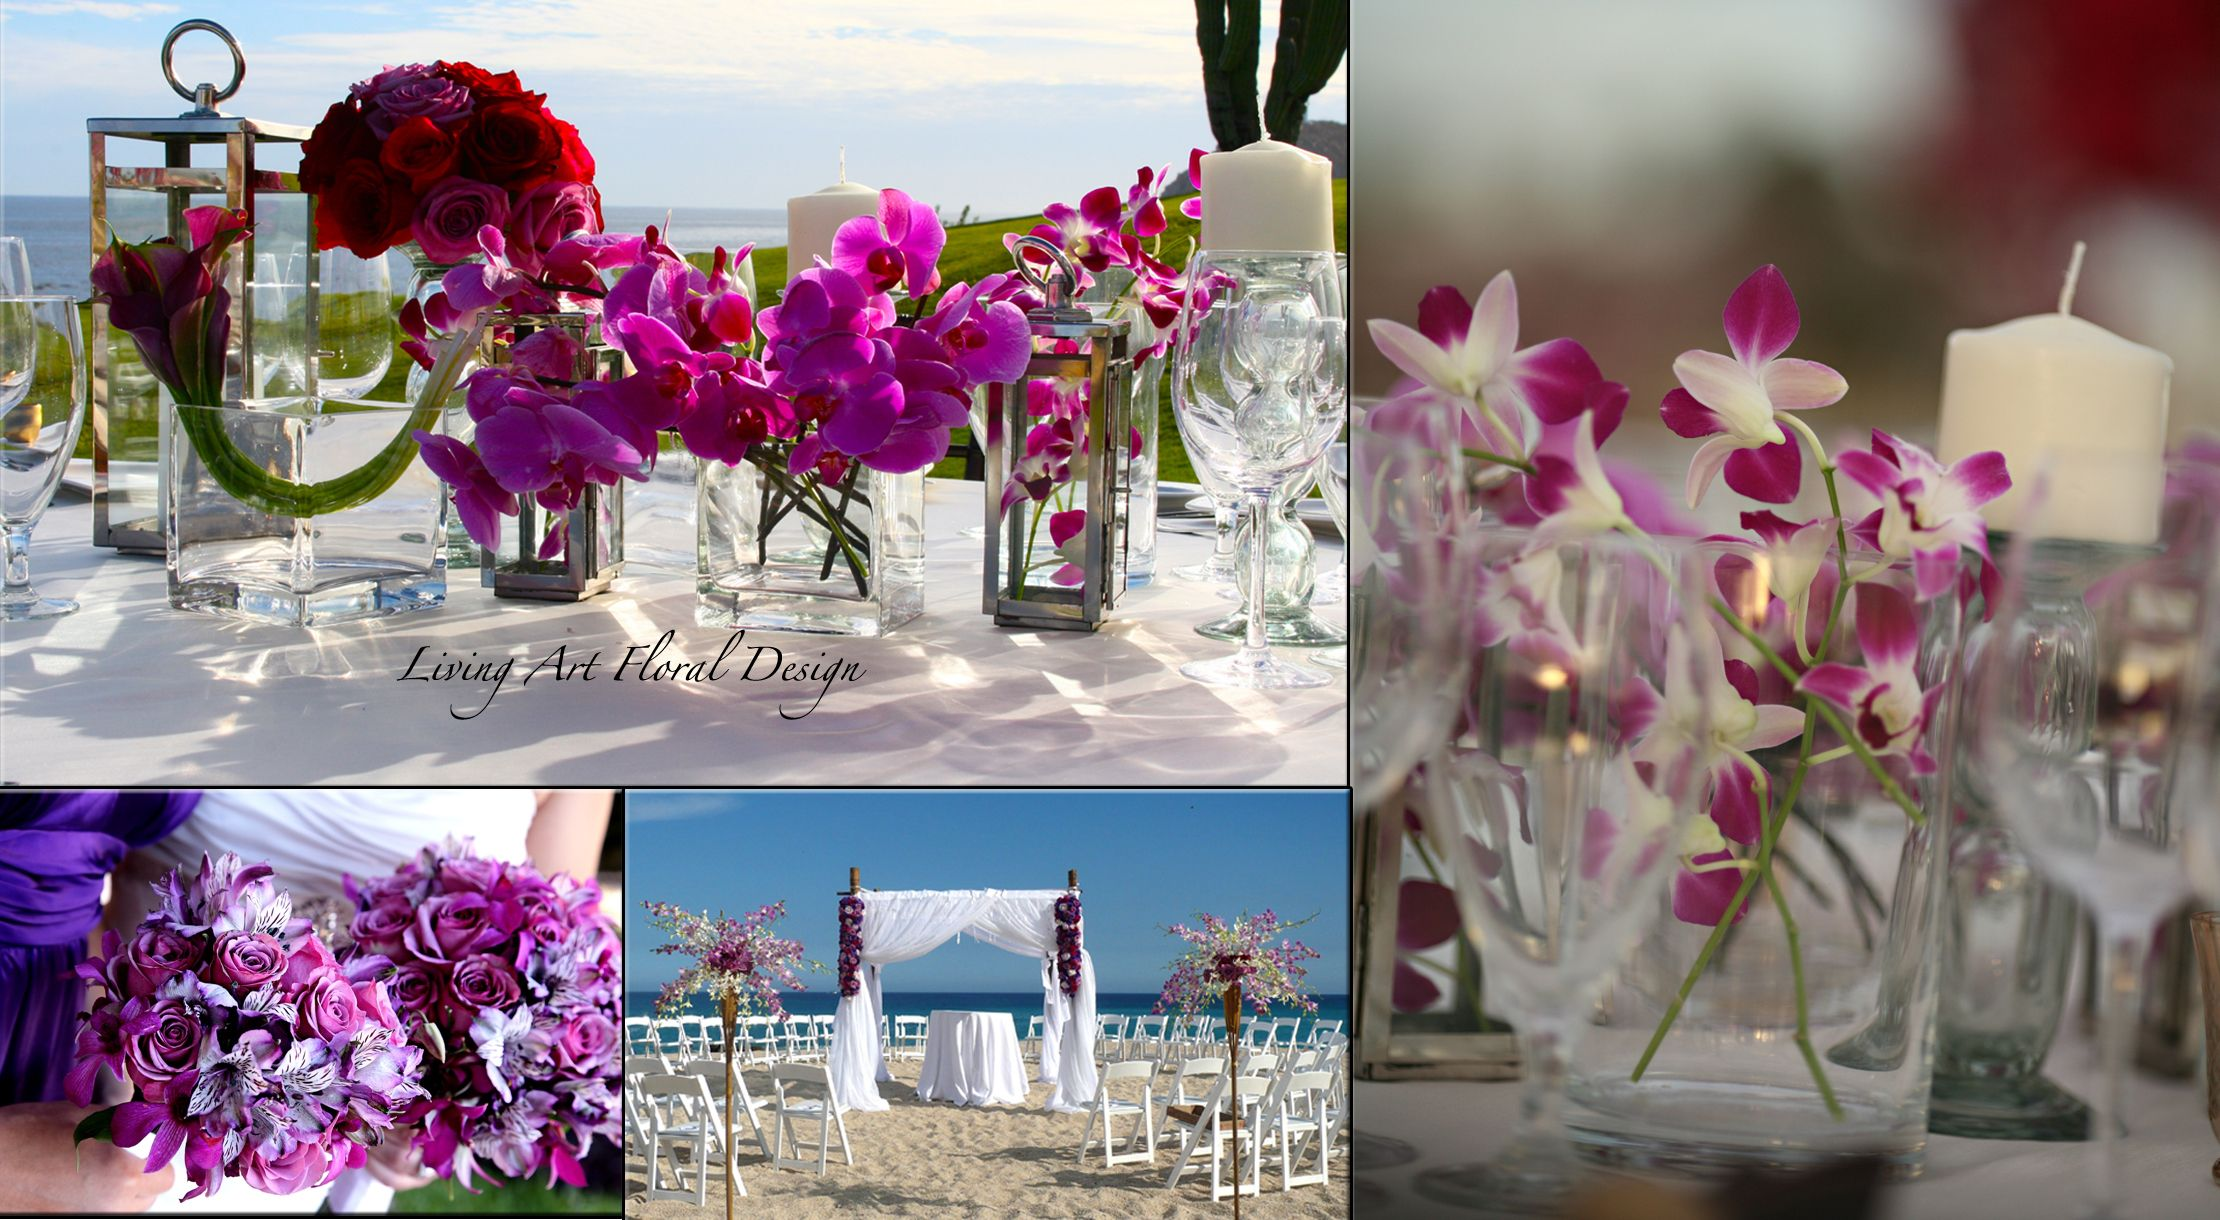 Floral designs and Wedding centerpieces